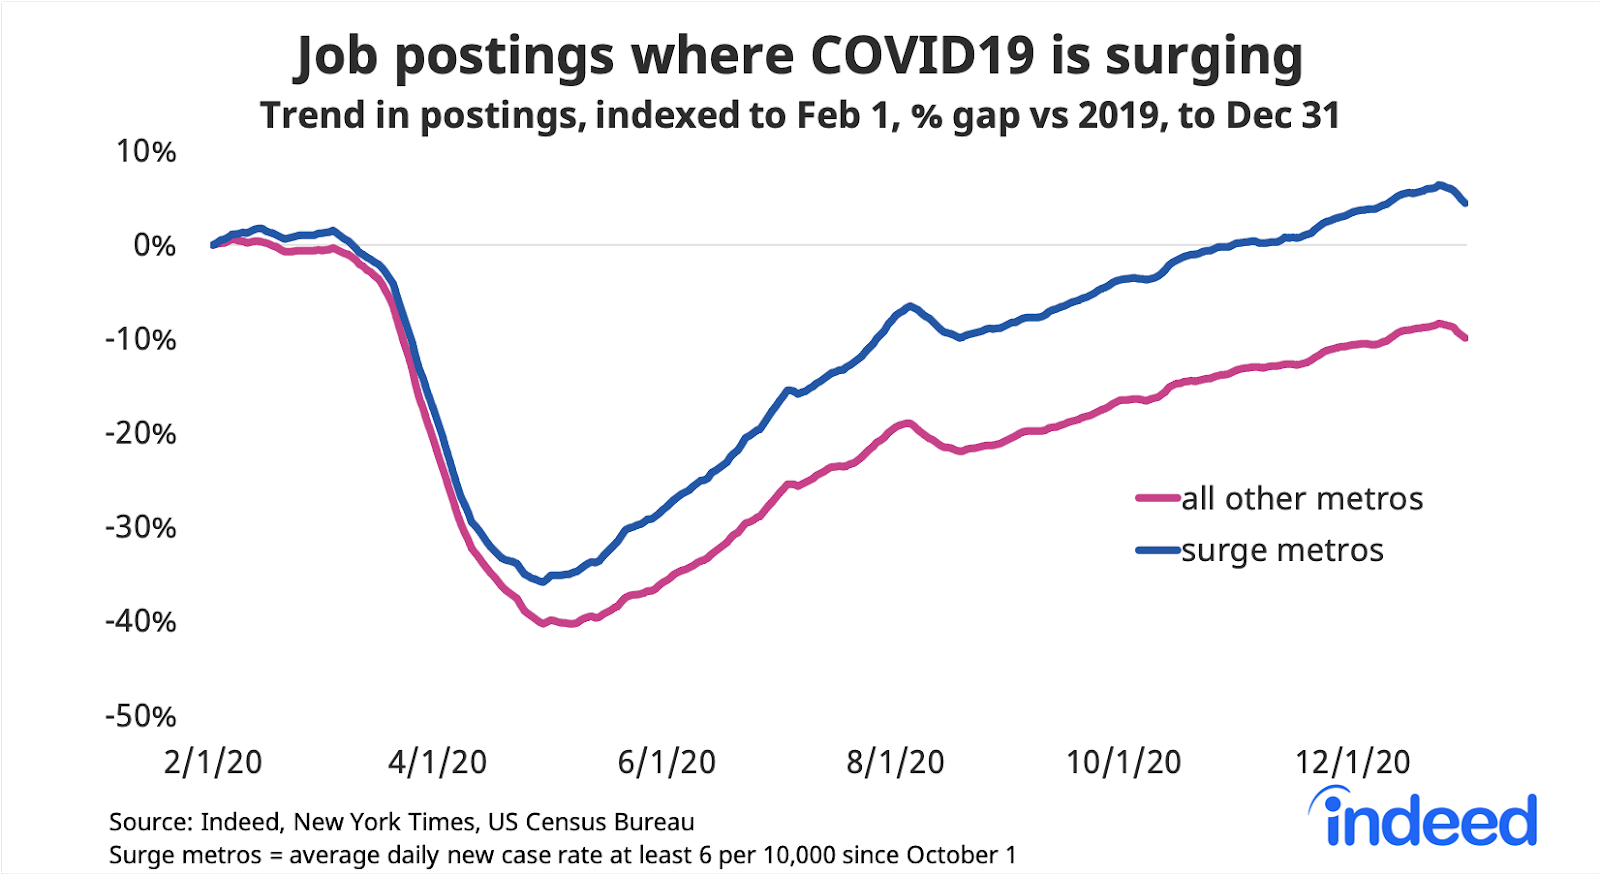 Line graph job postings where COVID19 is surging